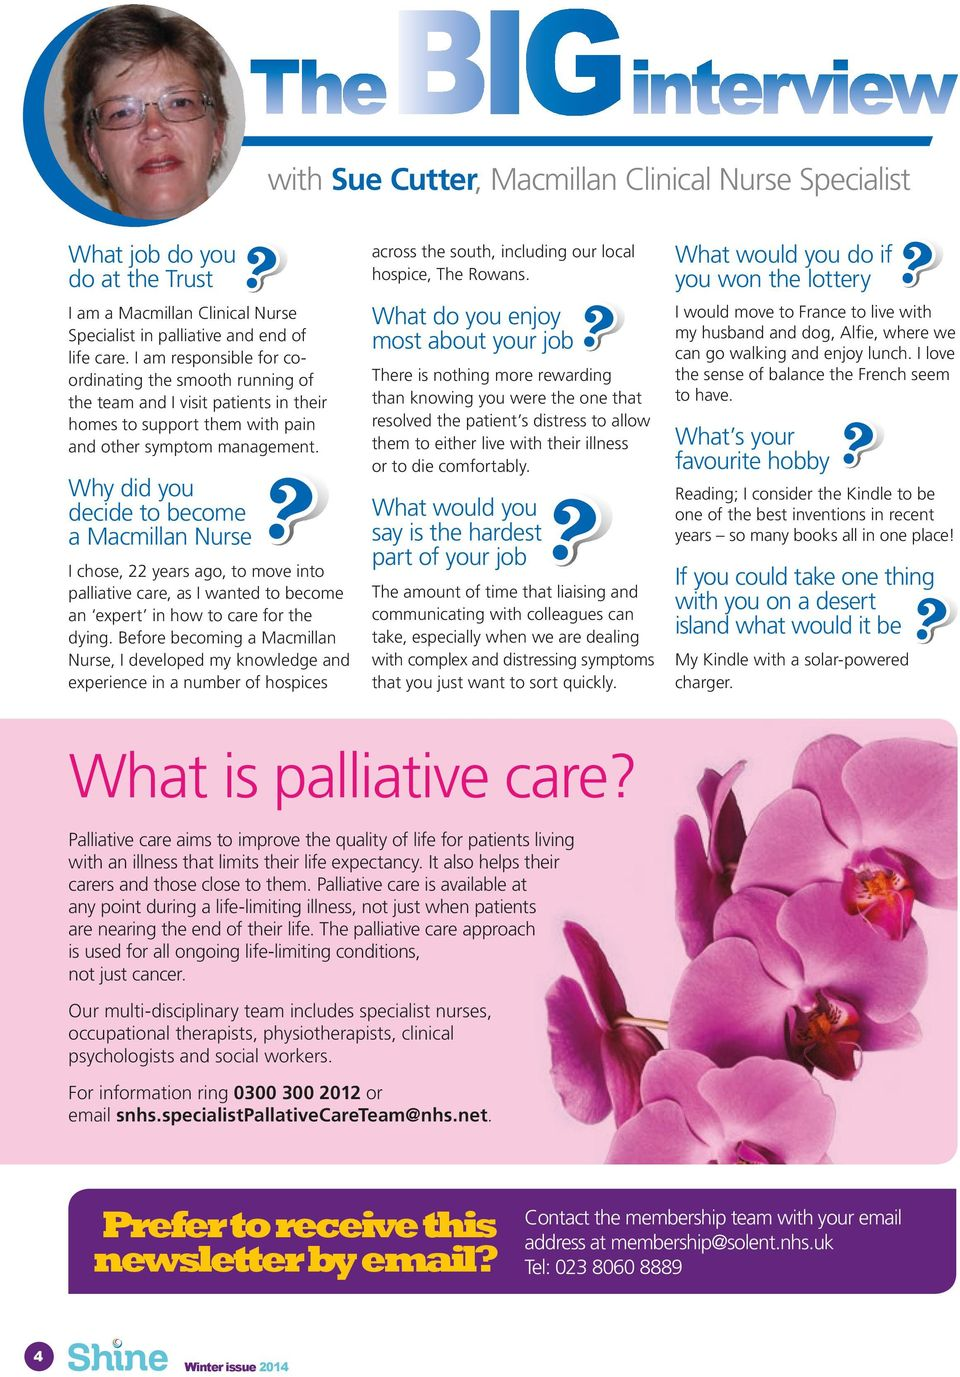 Why did you decide to become a Macmillan Nurse I chose, 22 years ago, to move into palliative care, as I wanted to become an expert in how to care for the dying.